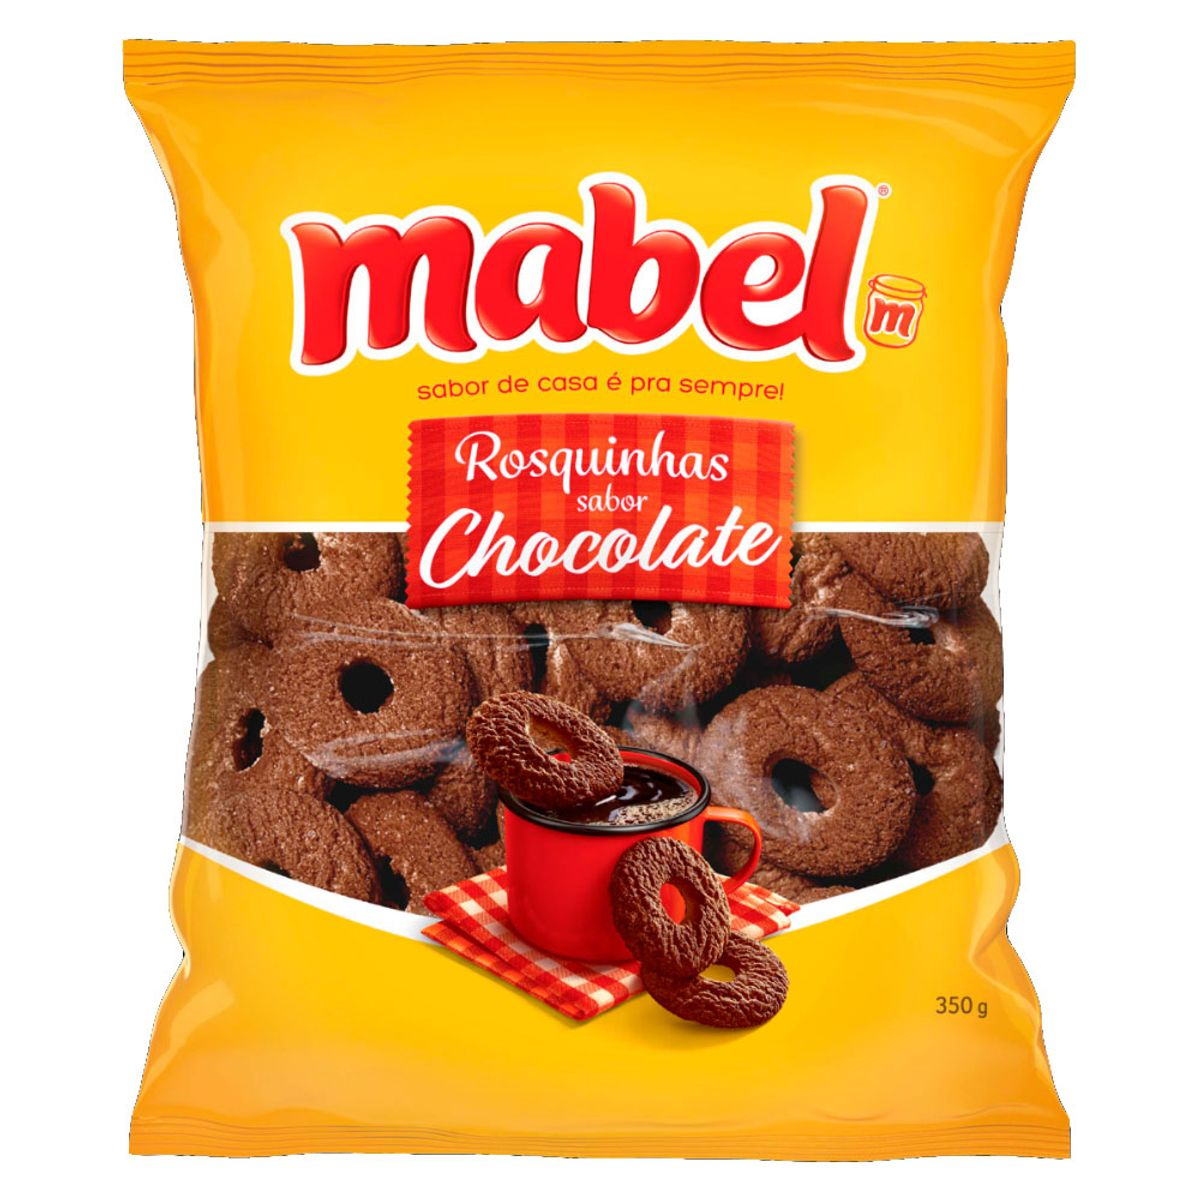 MABEL ROSCA CHOCOLATE 350GR CX/28